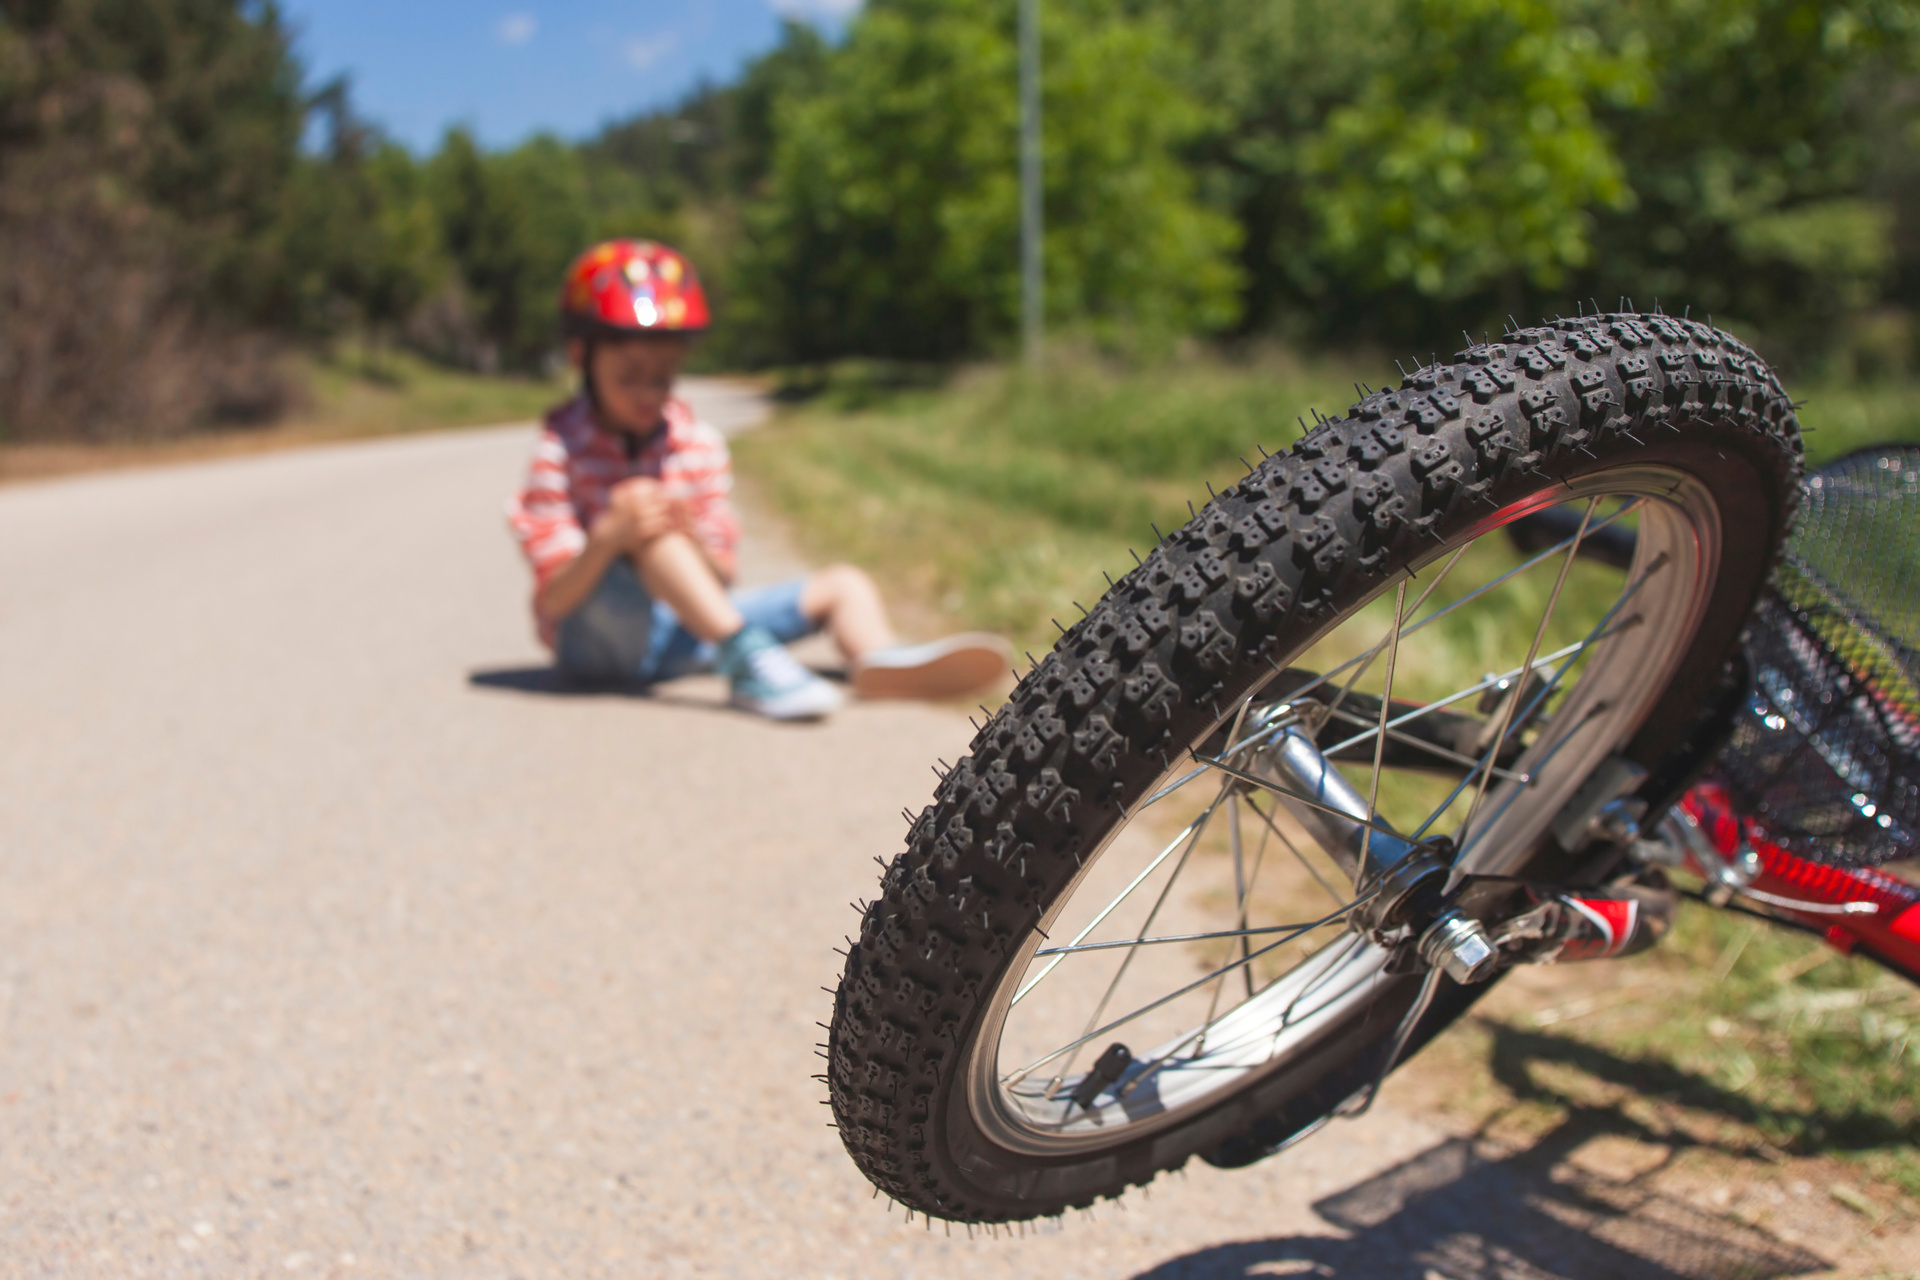 Bike riding worst sport for head injuries in kids, new study shows